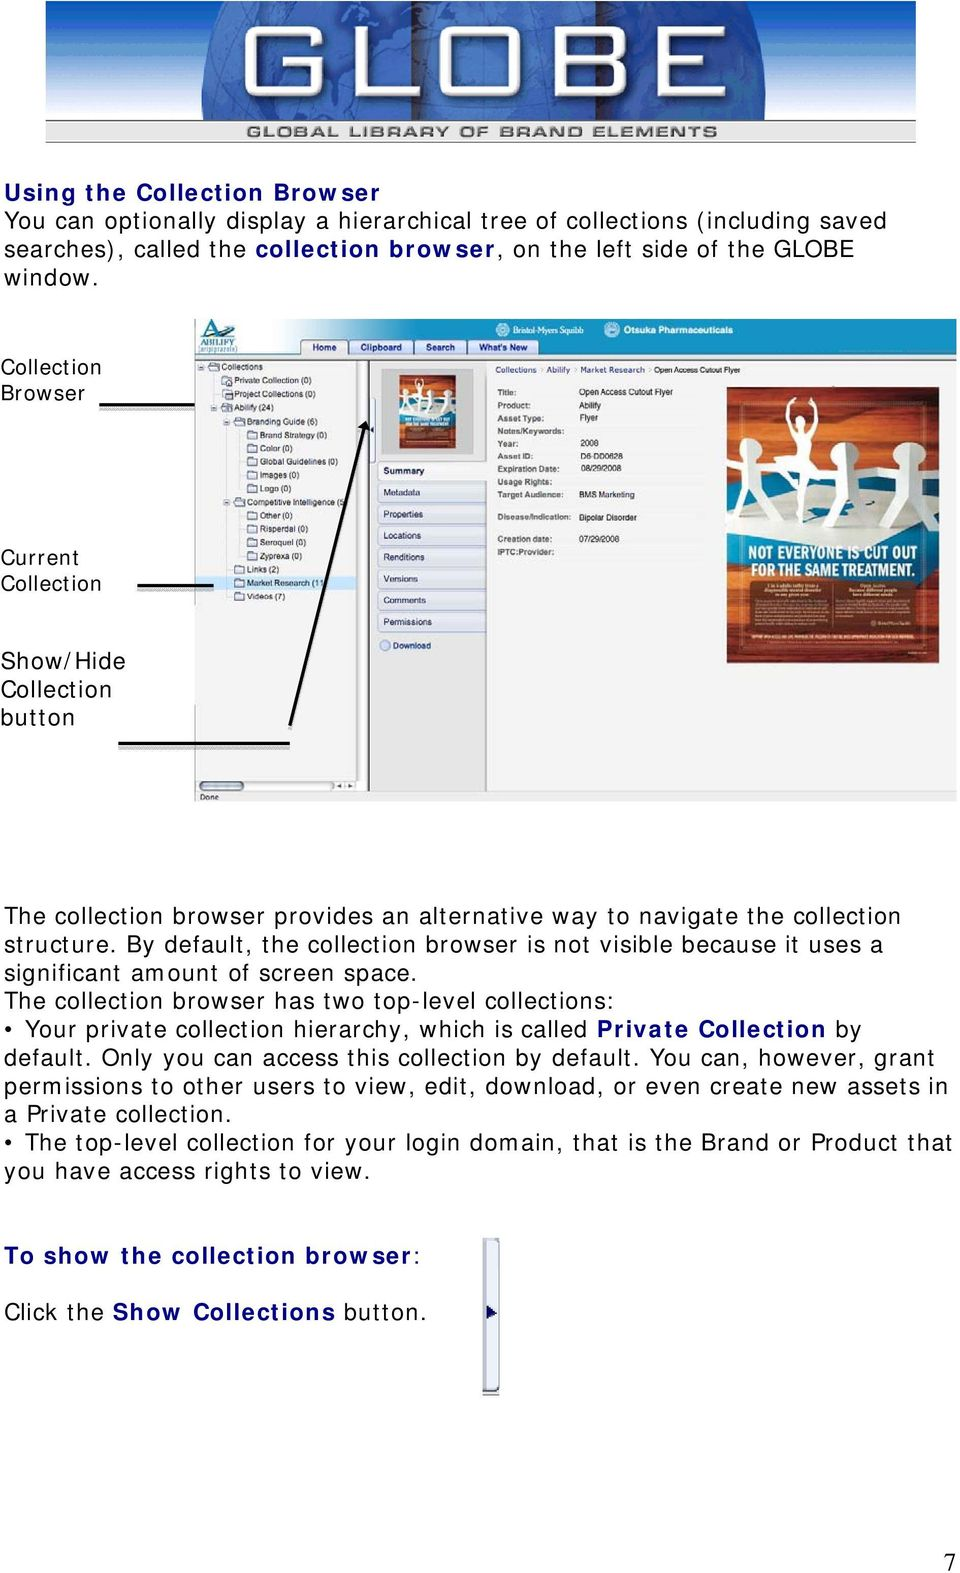 By default, the collection browser is not visible because it uses a significant amount of screen space.